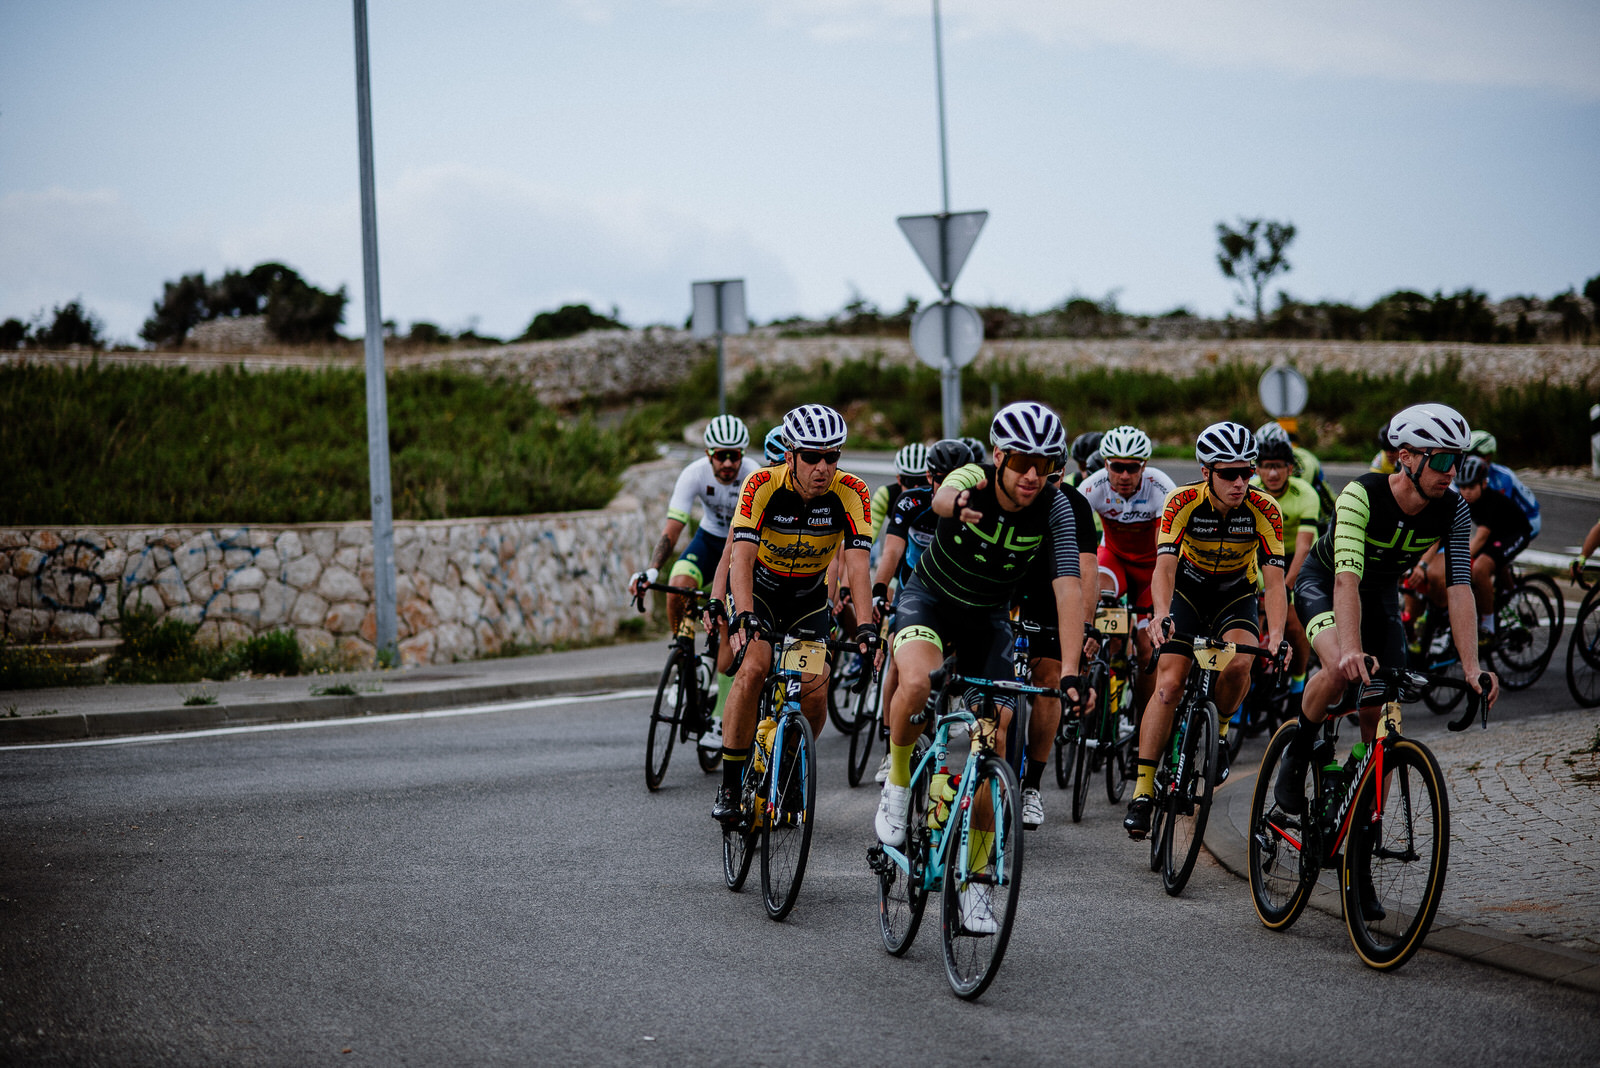 likaclub_Granfondo-Pag-–-Cycling-on-the-Moon_2019-4